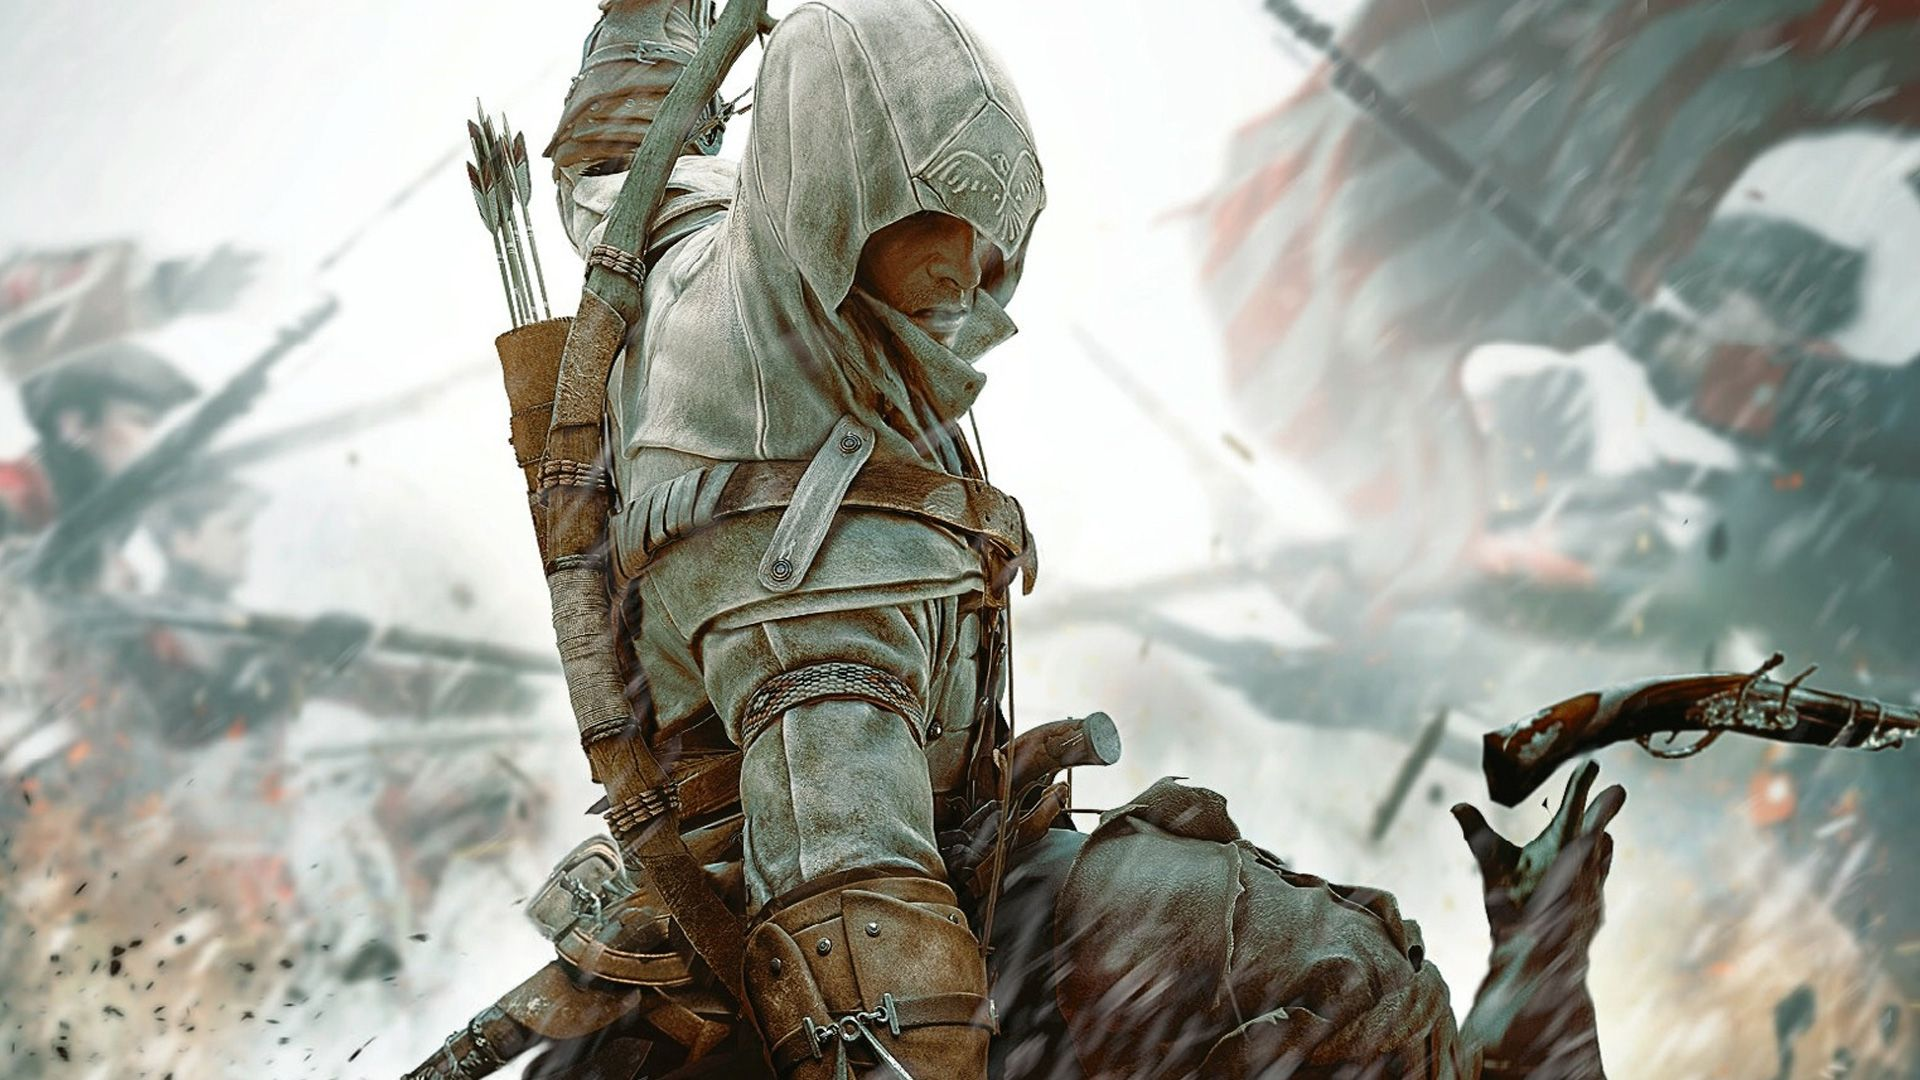 Soldiers Creed Tattoo Assassin's creed iii is an